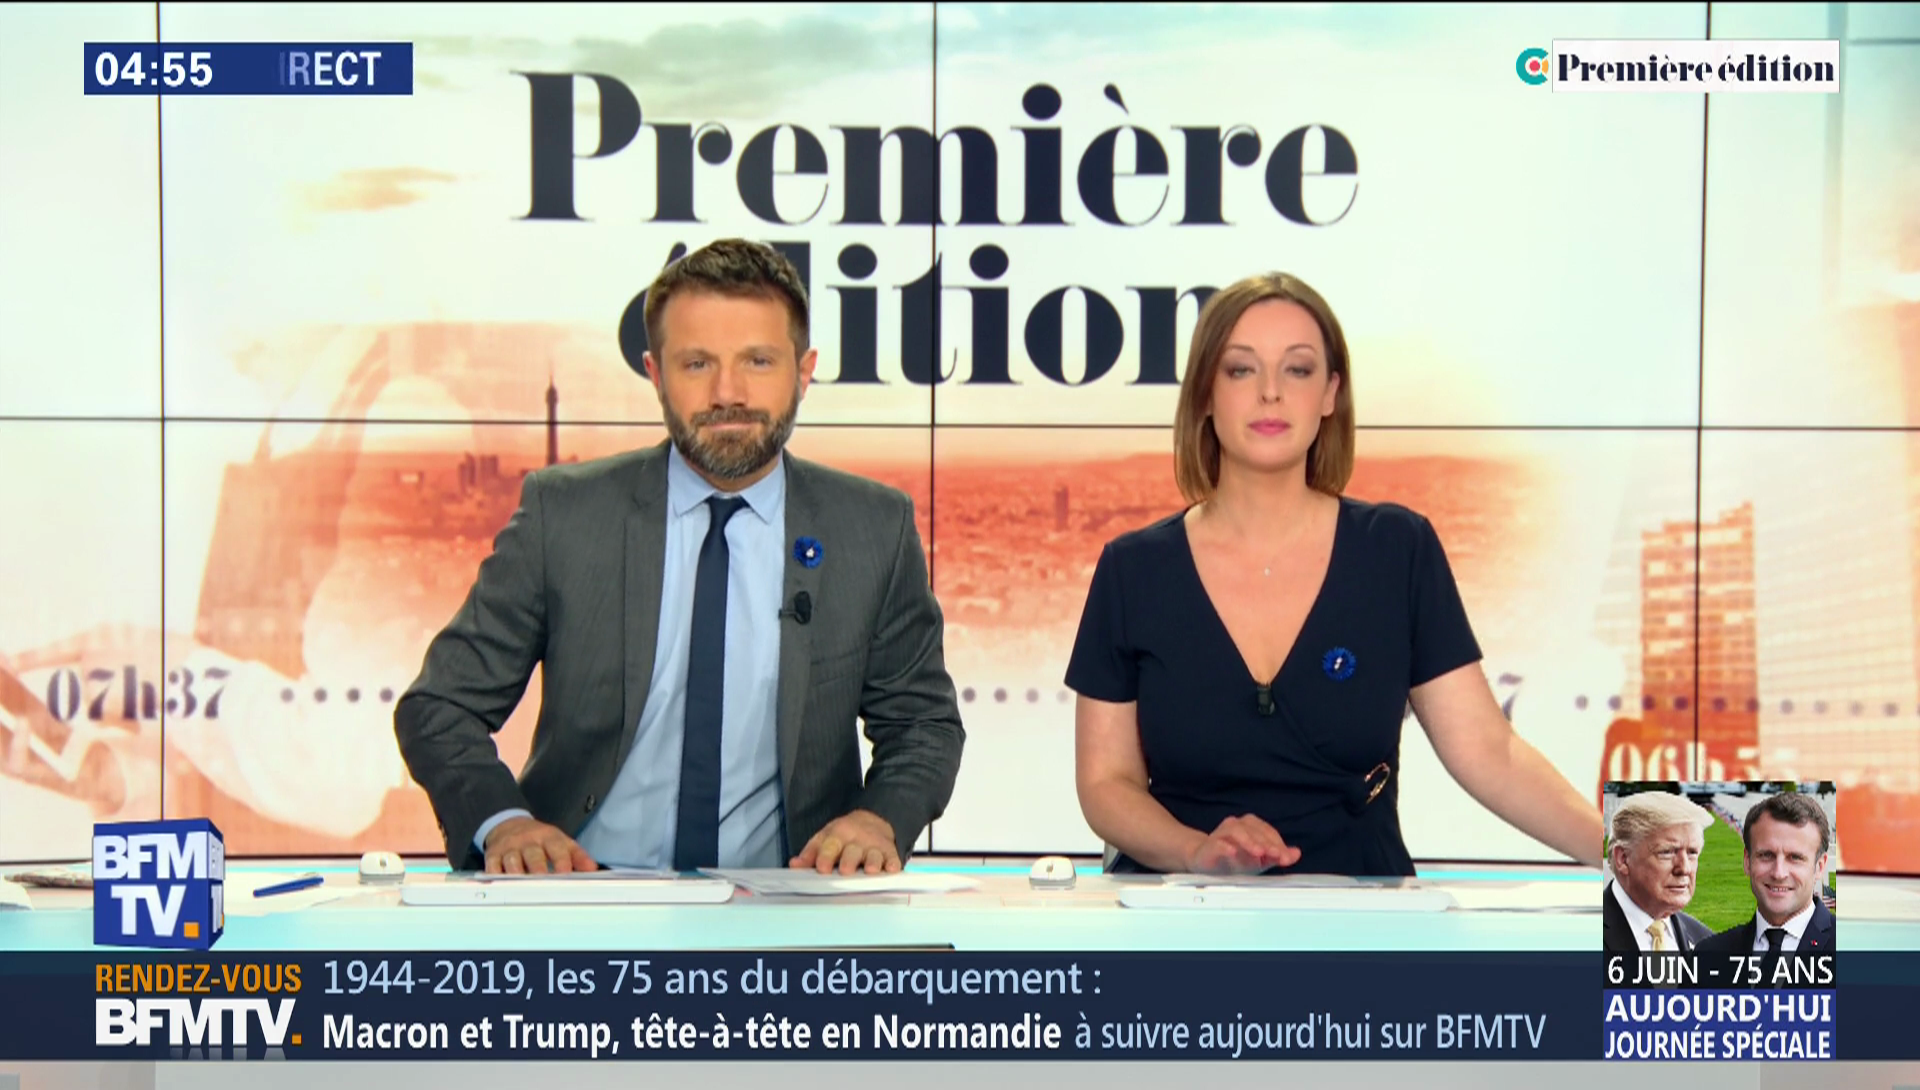 carolinedieudonne07.2019_06_06_journalpremiereeditionBFMTV